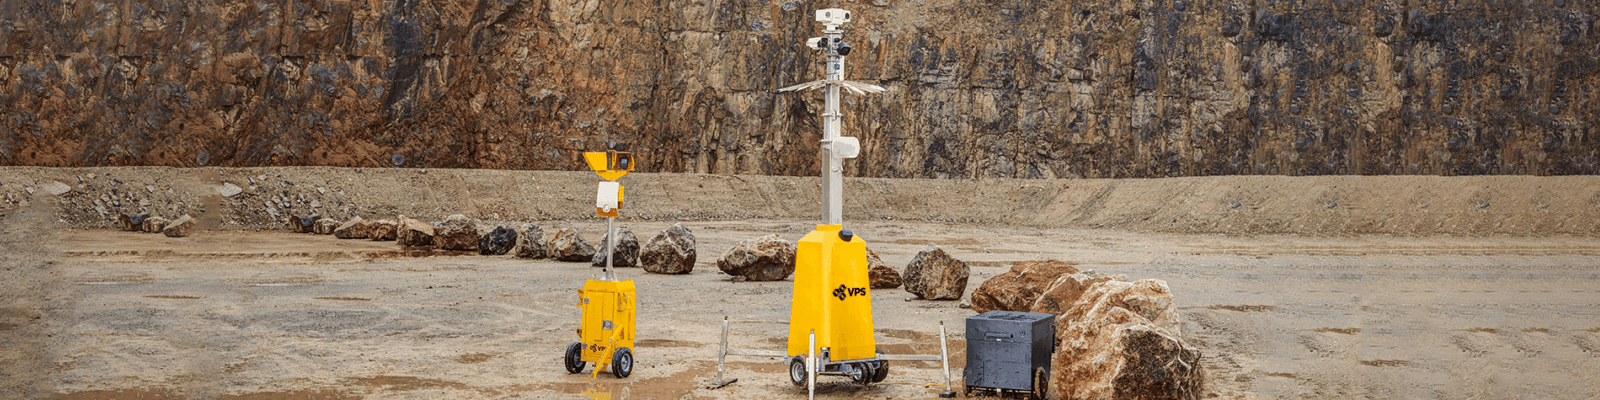 Jcb Alert Tower Wireless Alarm Towers For Temporary Site Security